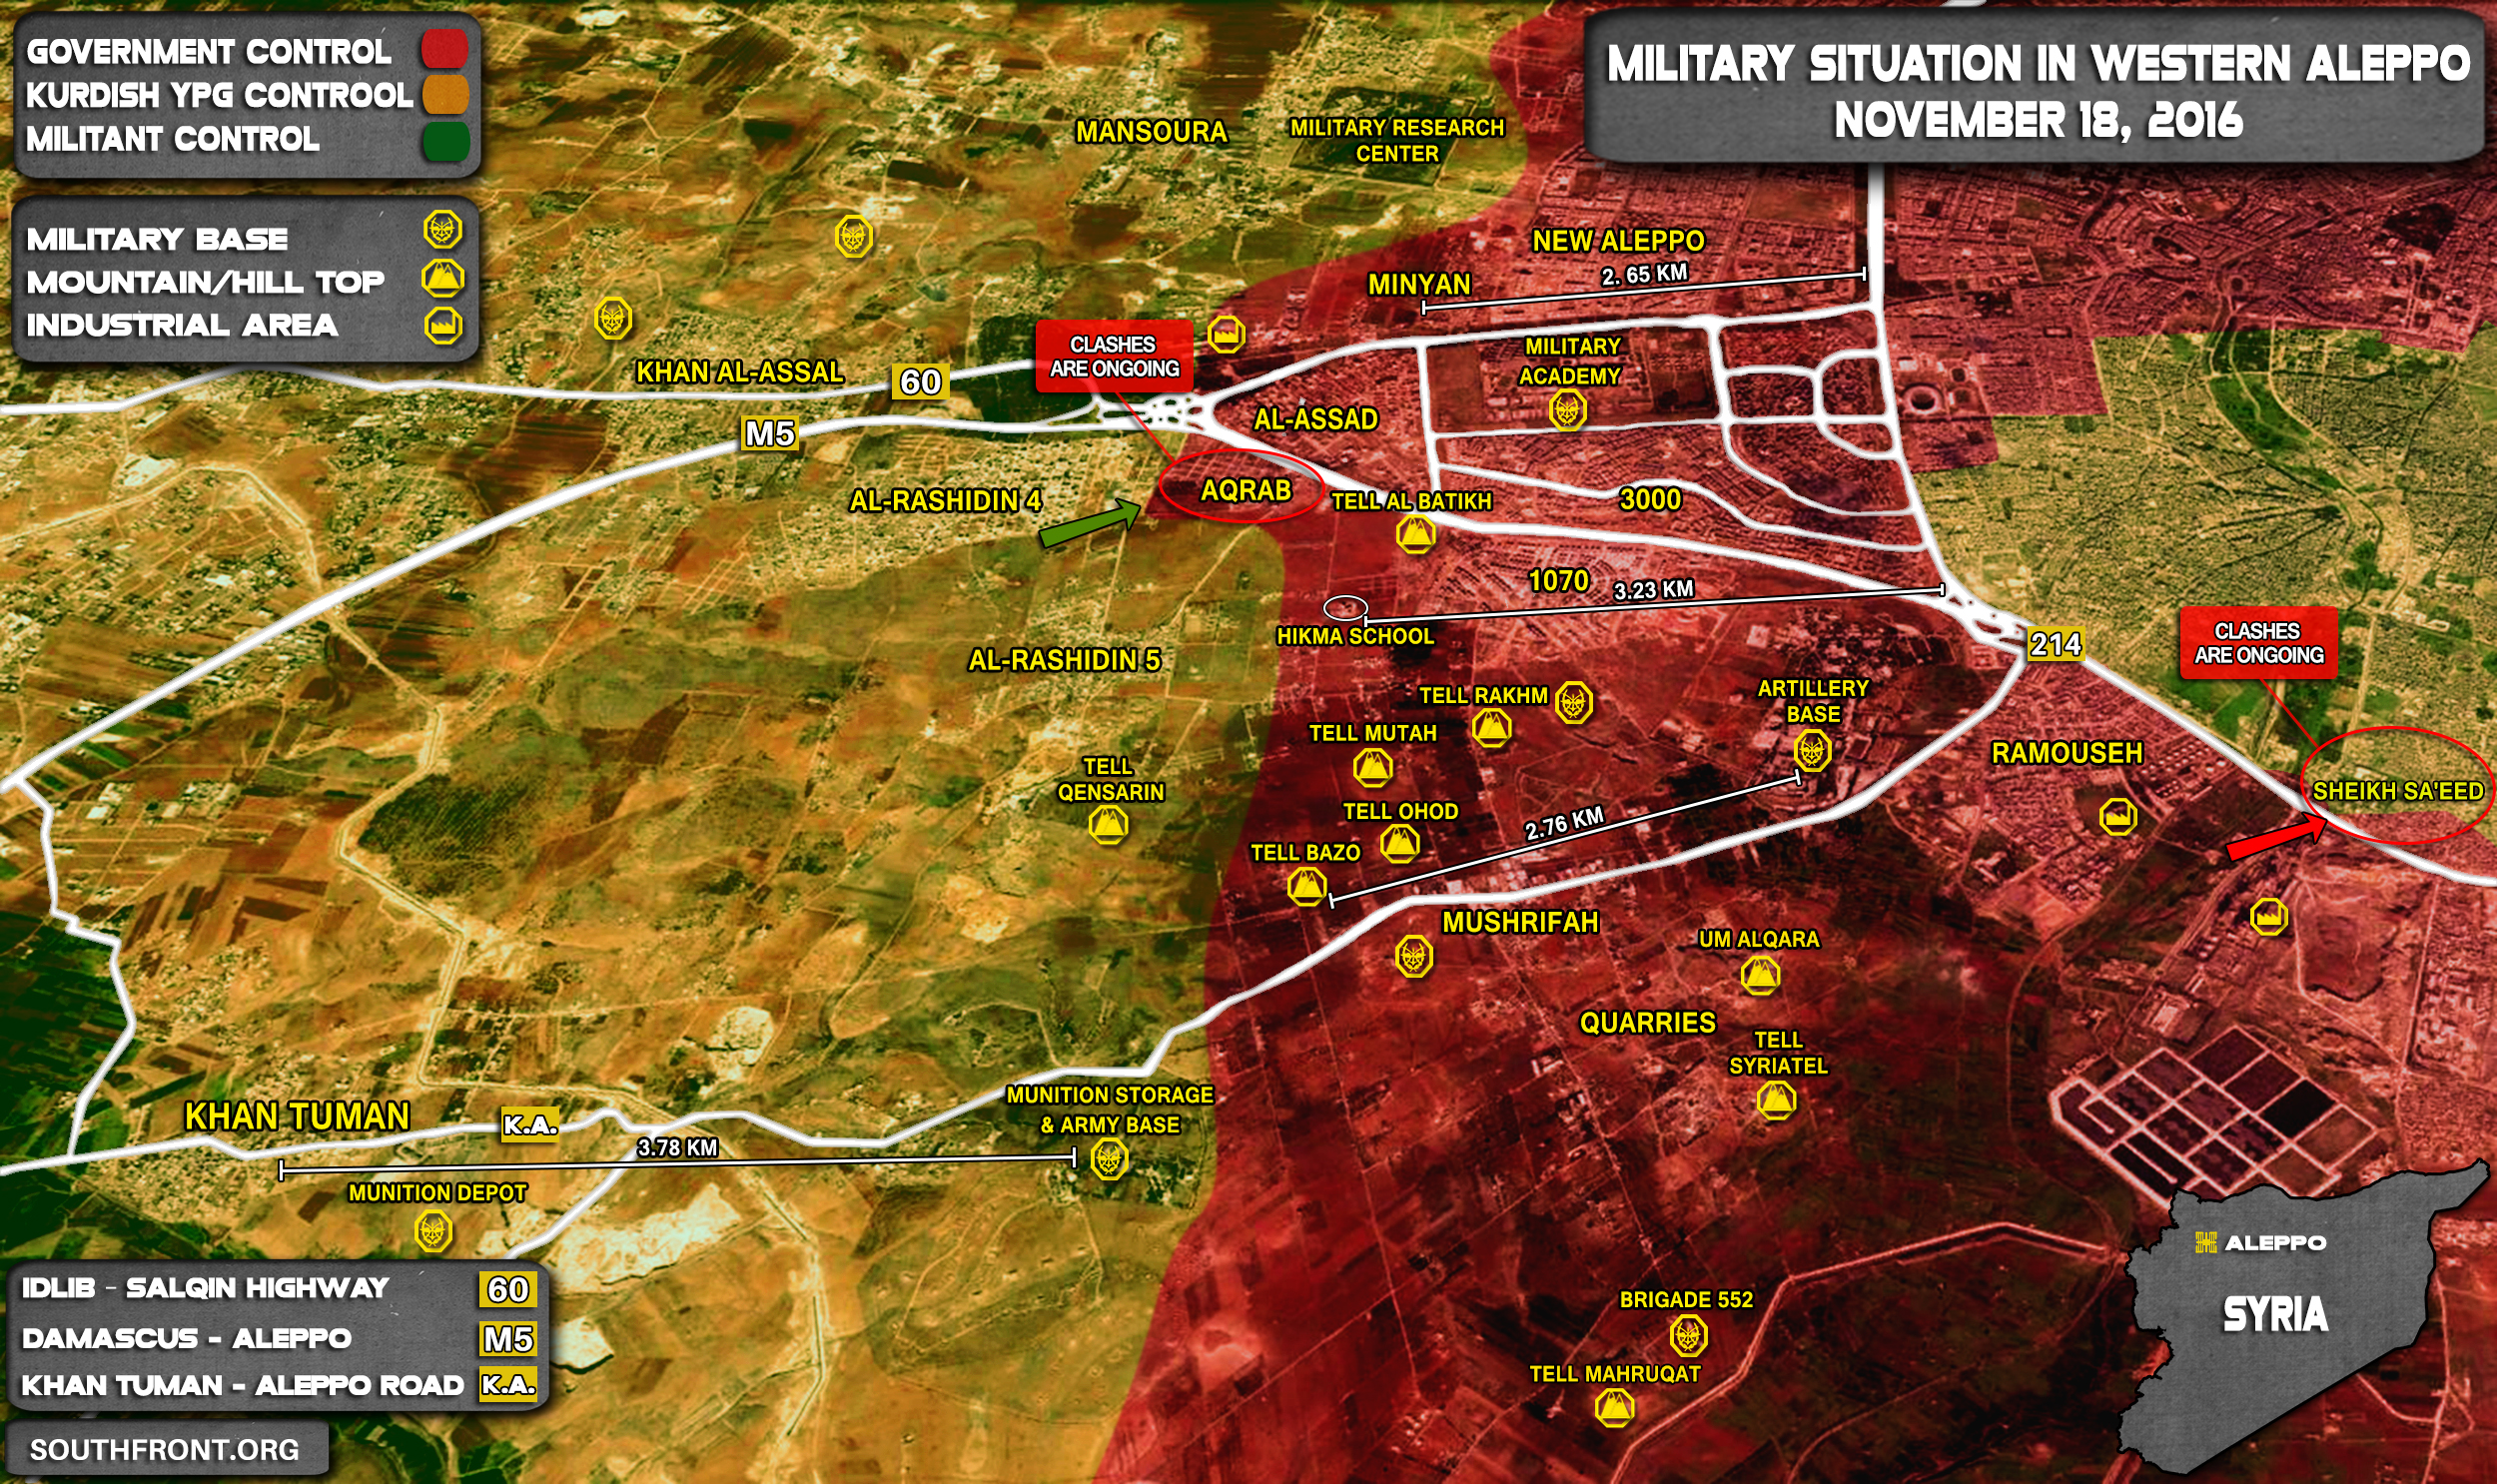 Overview of Military Situation in Aleppo City on Novmber 18, 2016